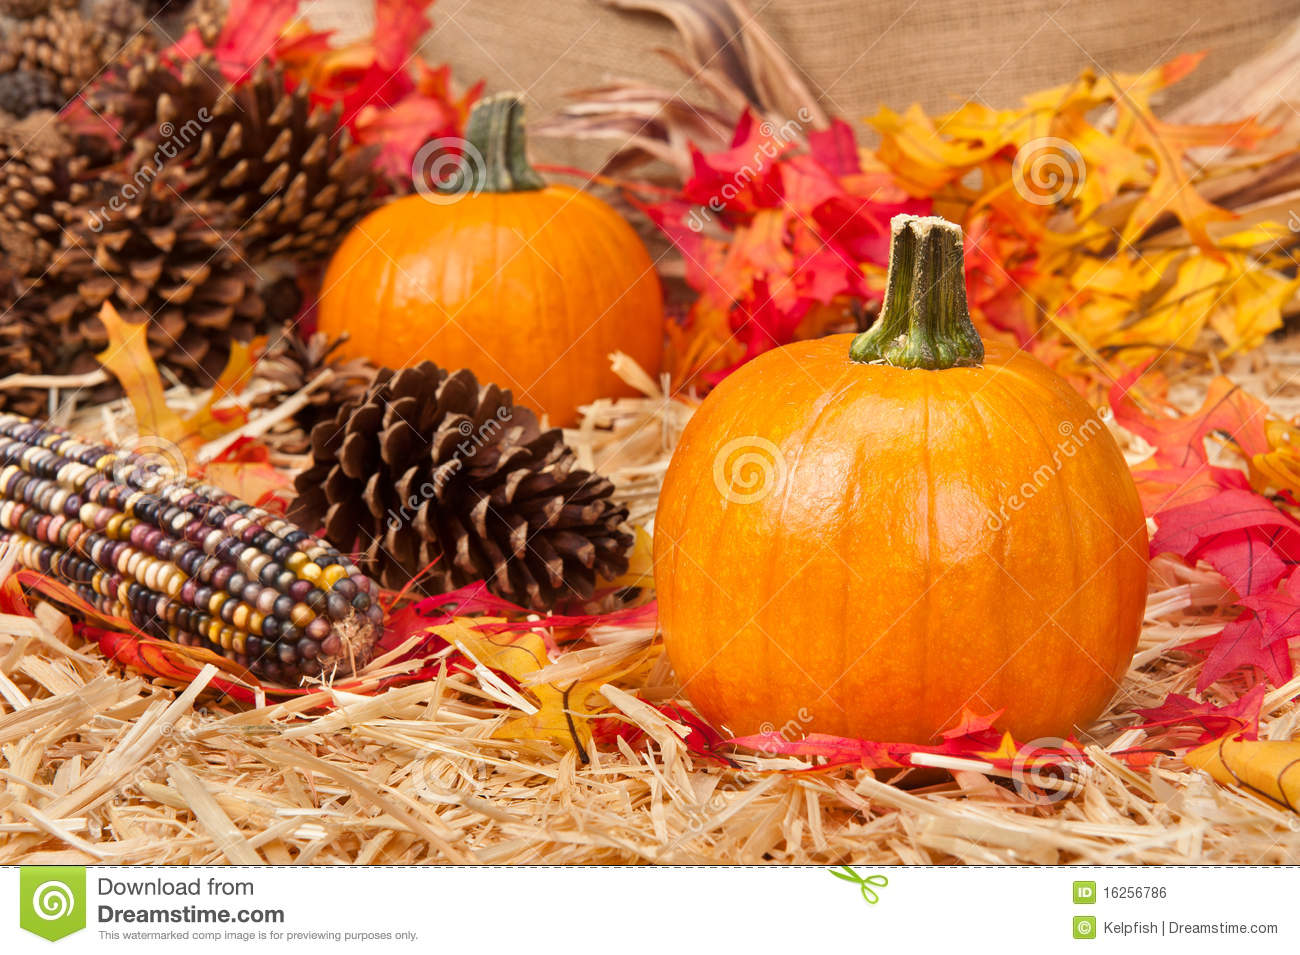 Fall Desktop Wallpaper With Pumpkins Autumn Theme Stock Photo Image Of Dried Decoration